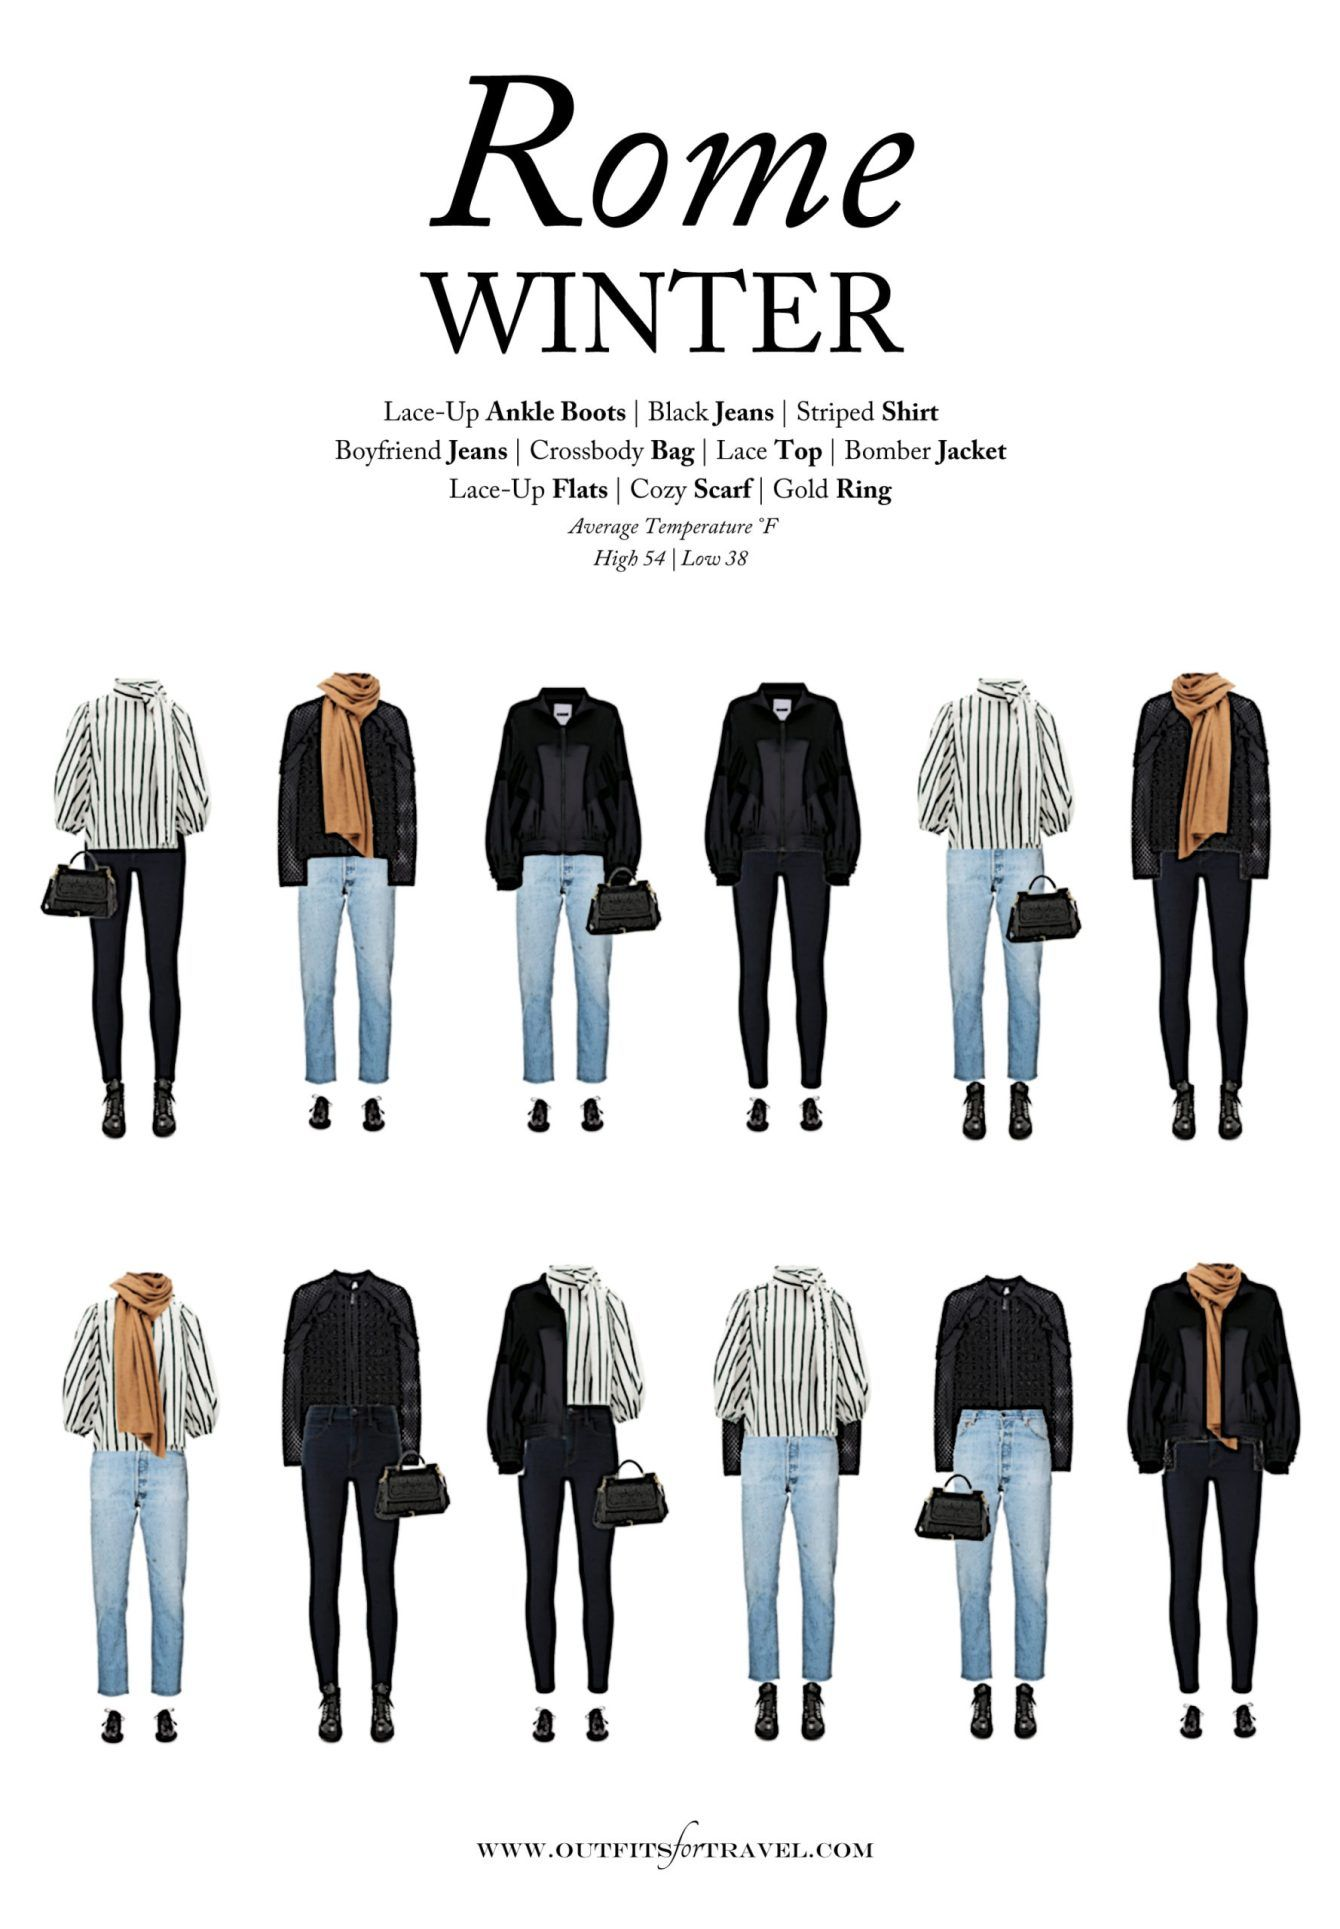 What to Wear to Rome in the Winter - Outfits For T